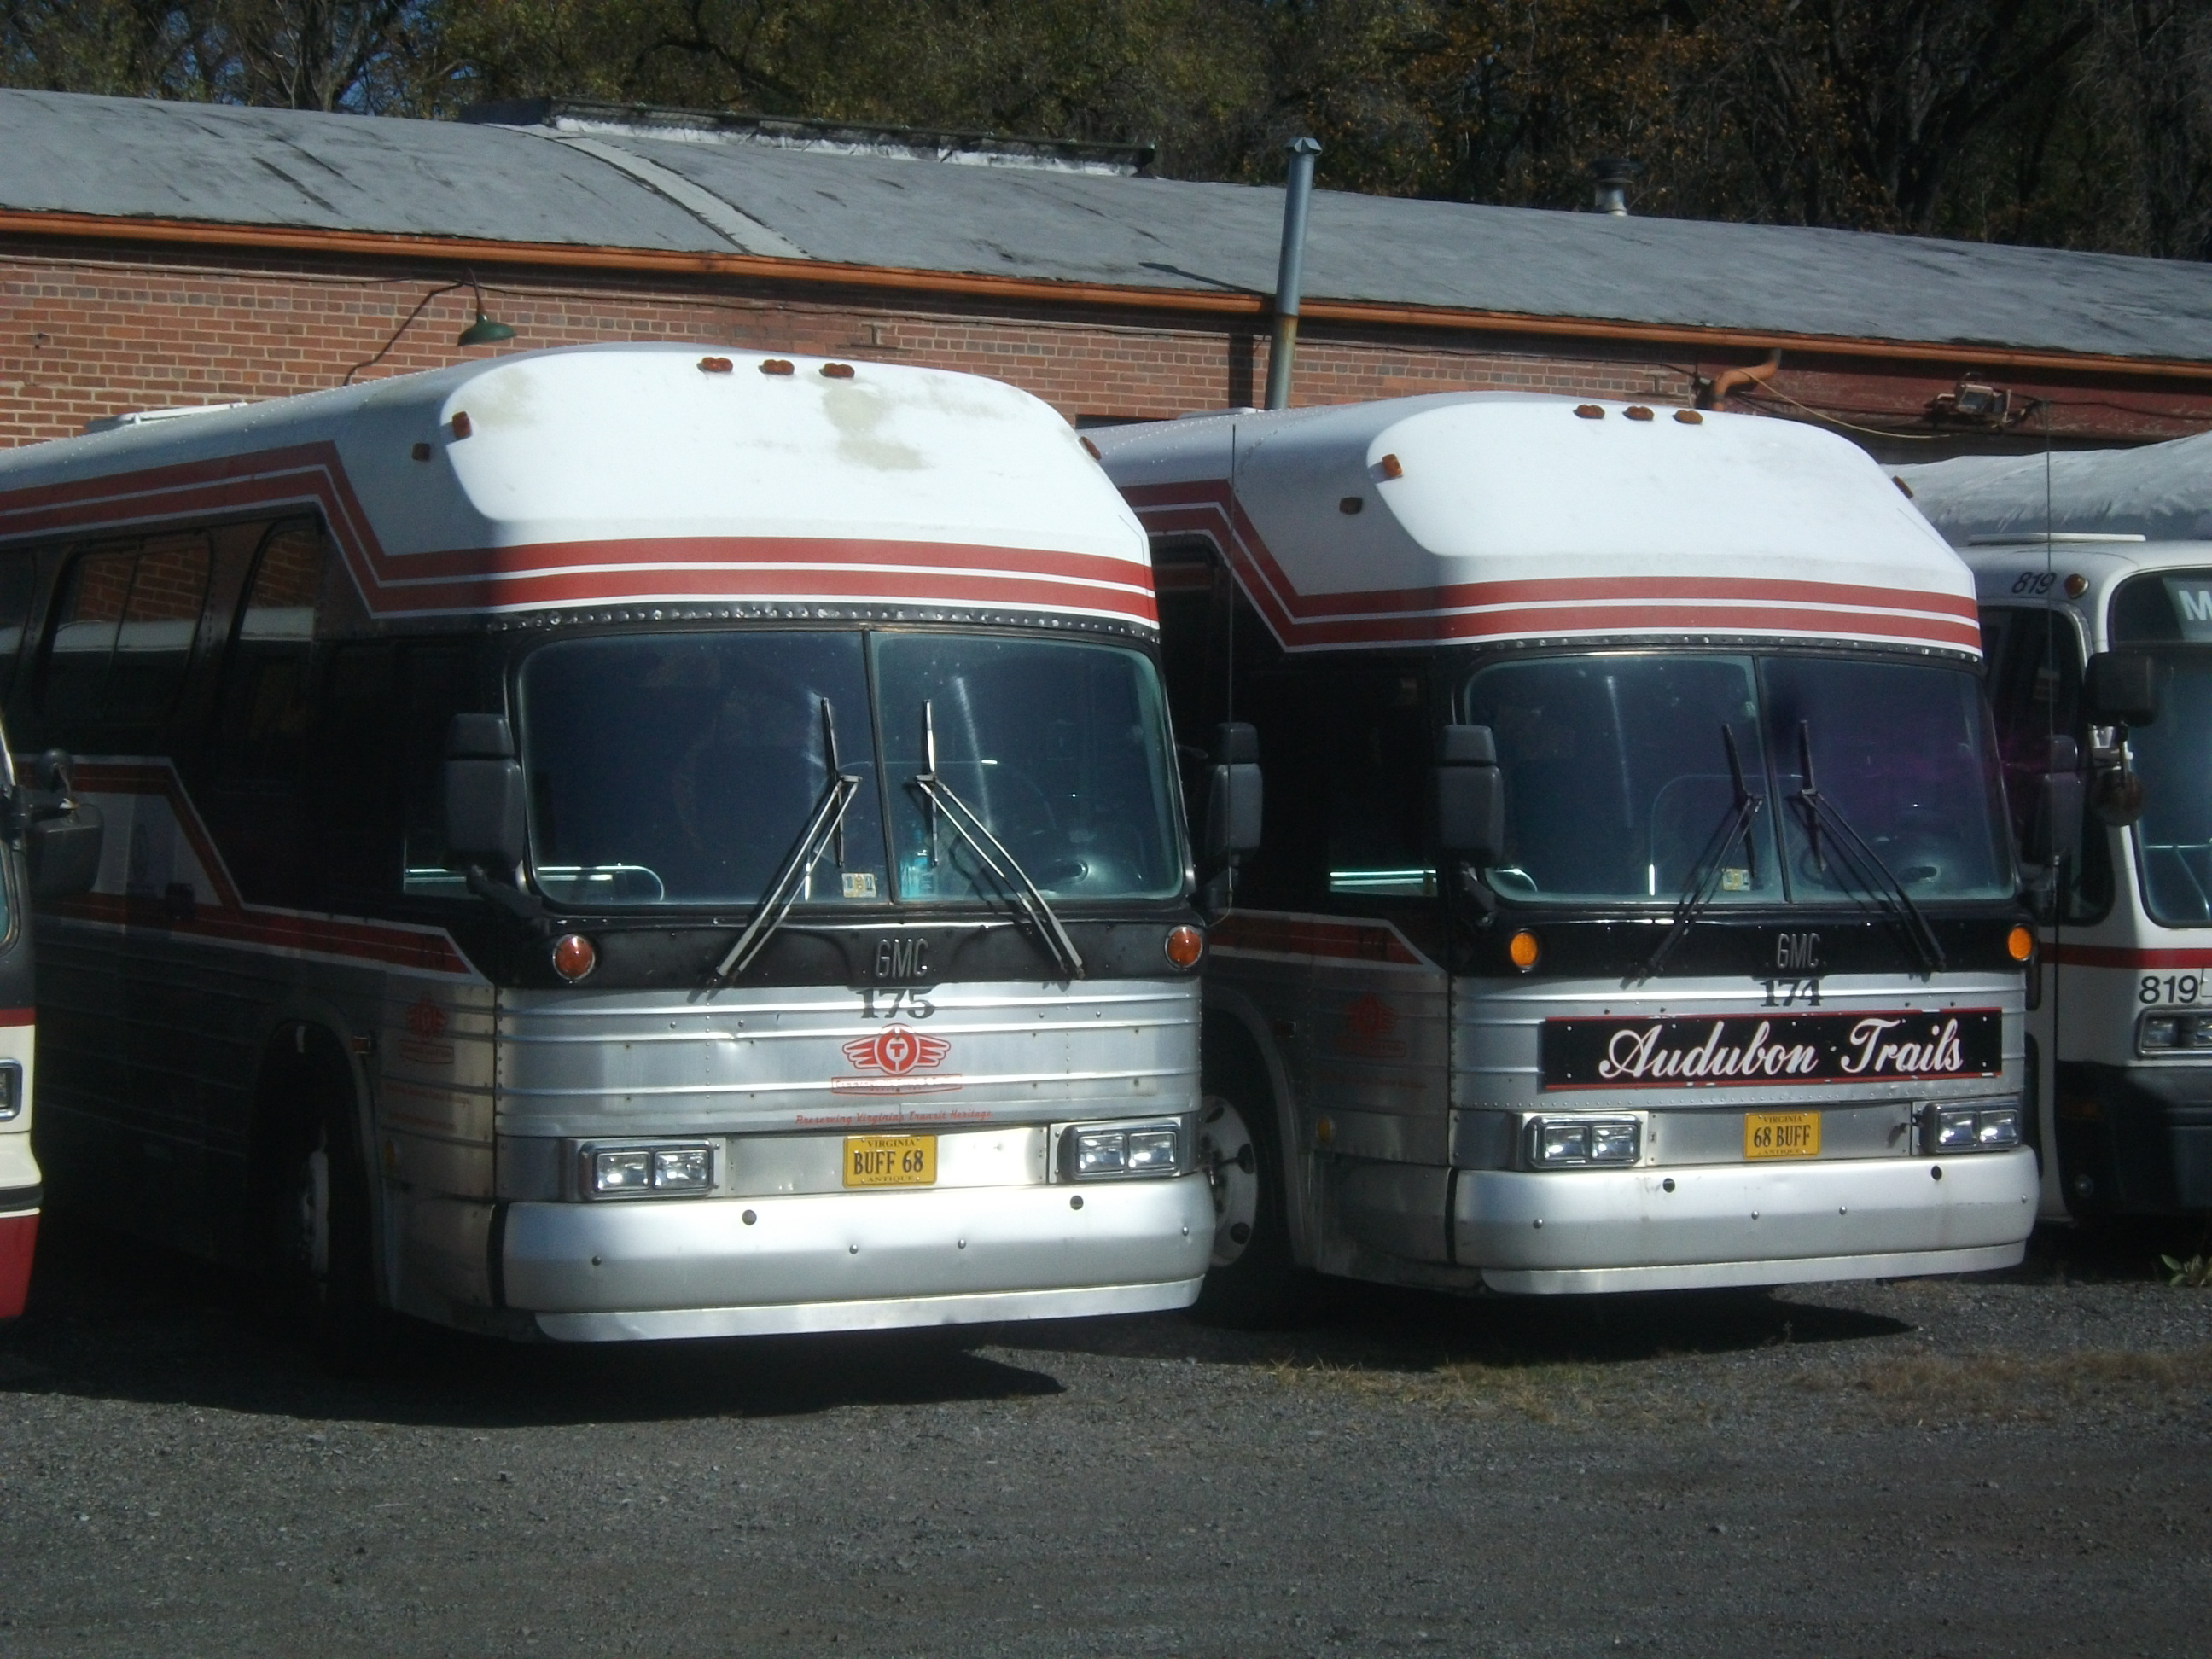 Coach 174 and 175 at the Buseum